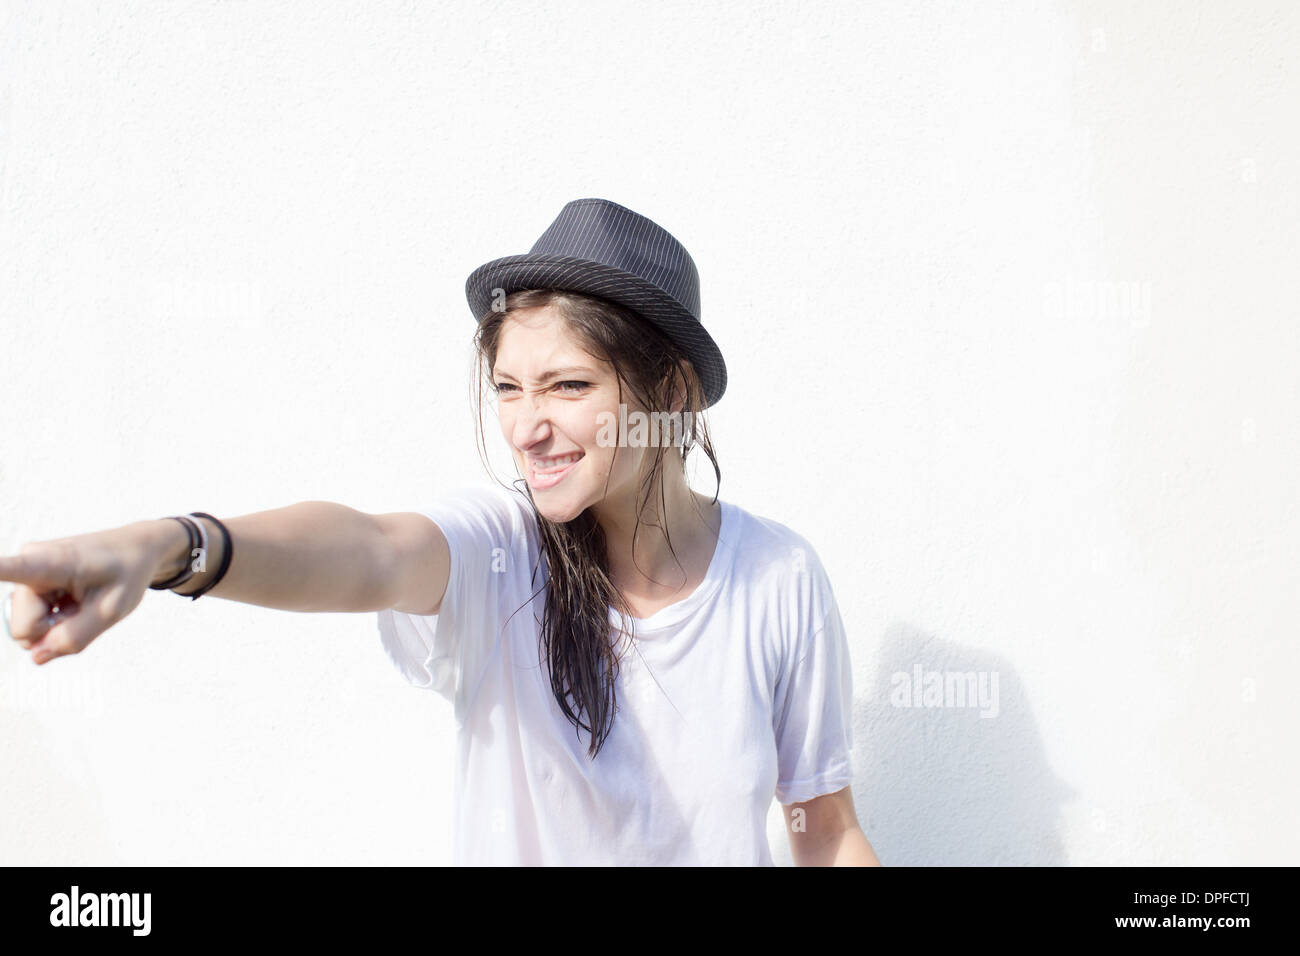 Young woman with attitude pointing finger - Stock Image